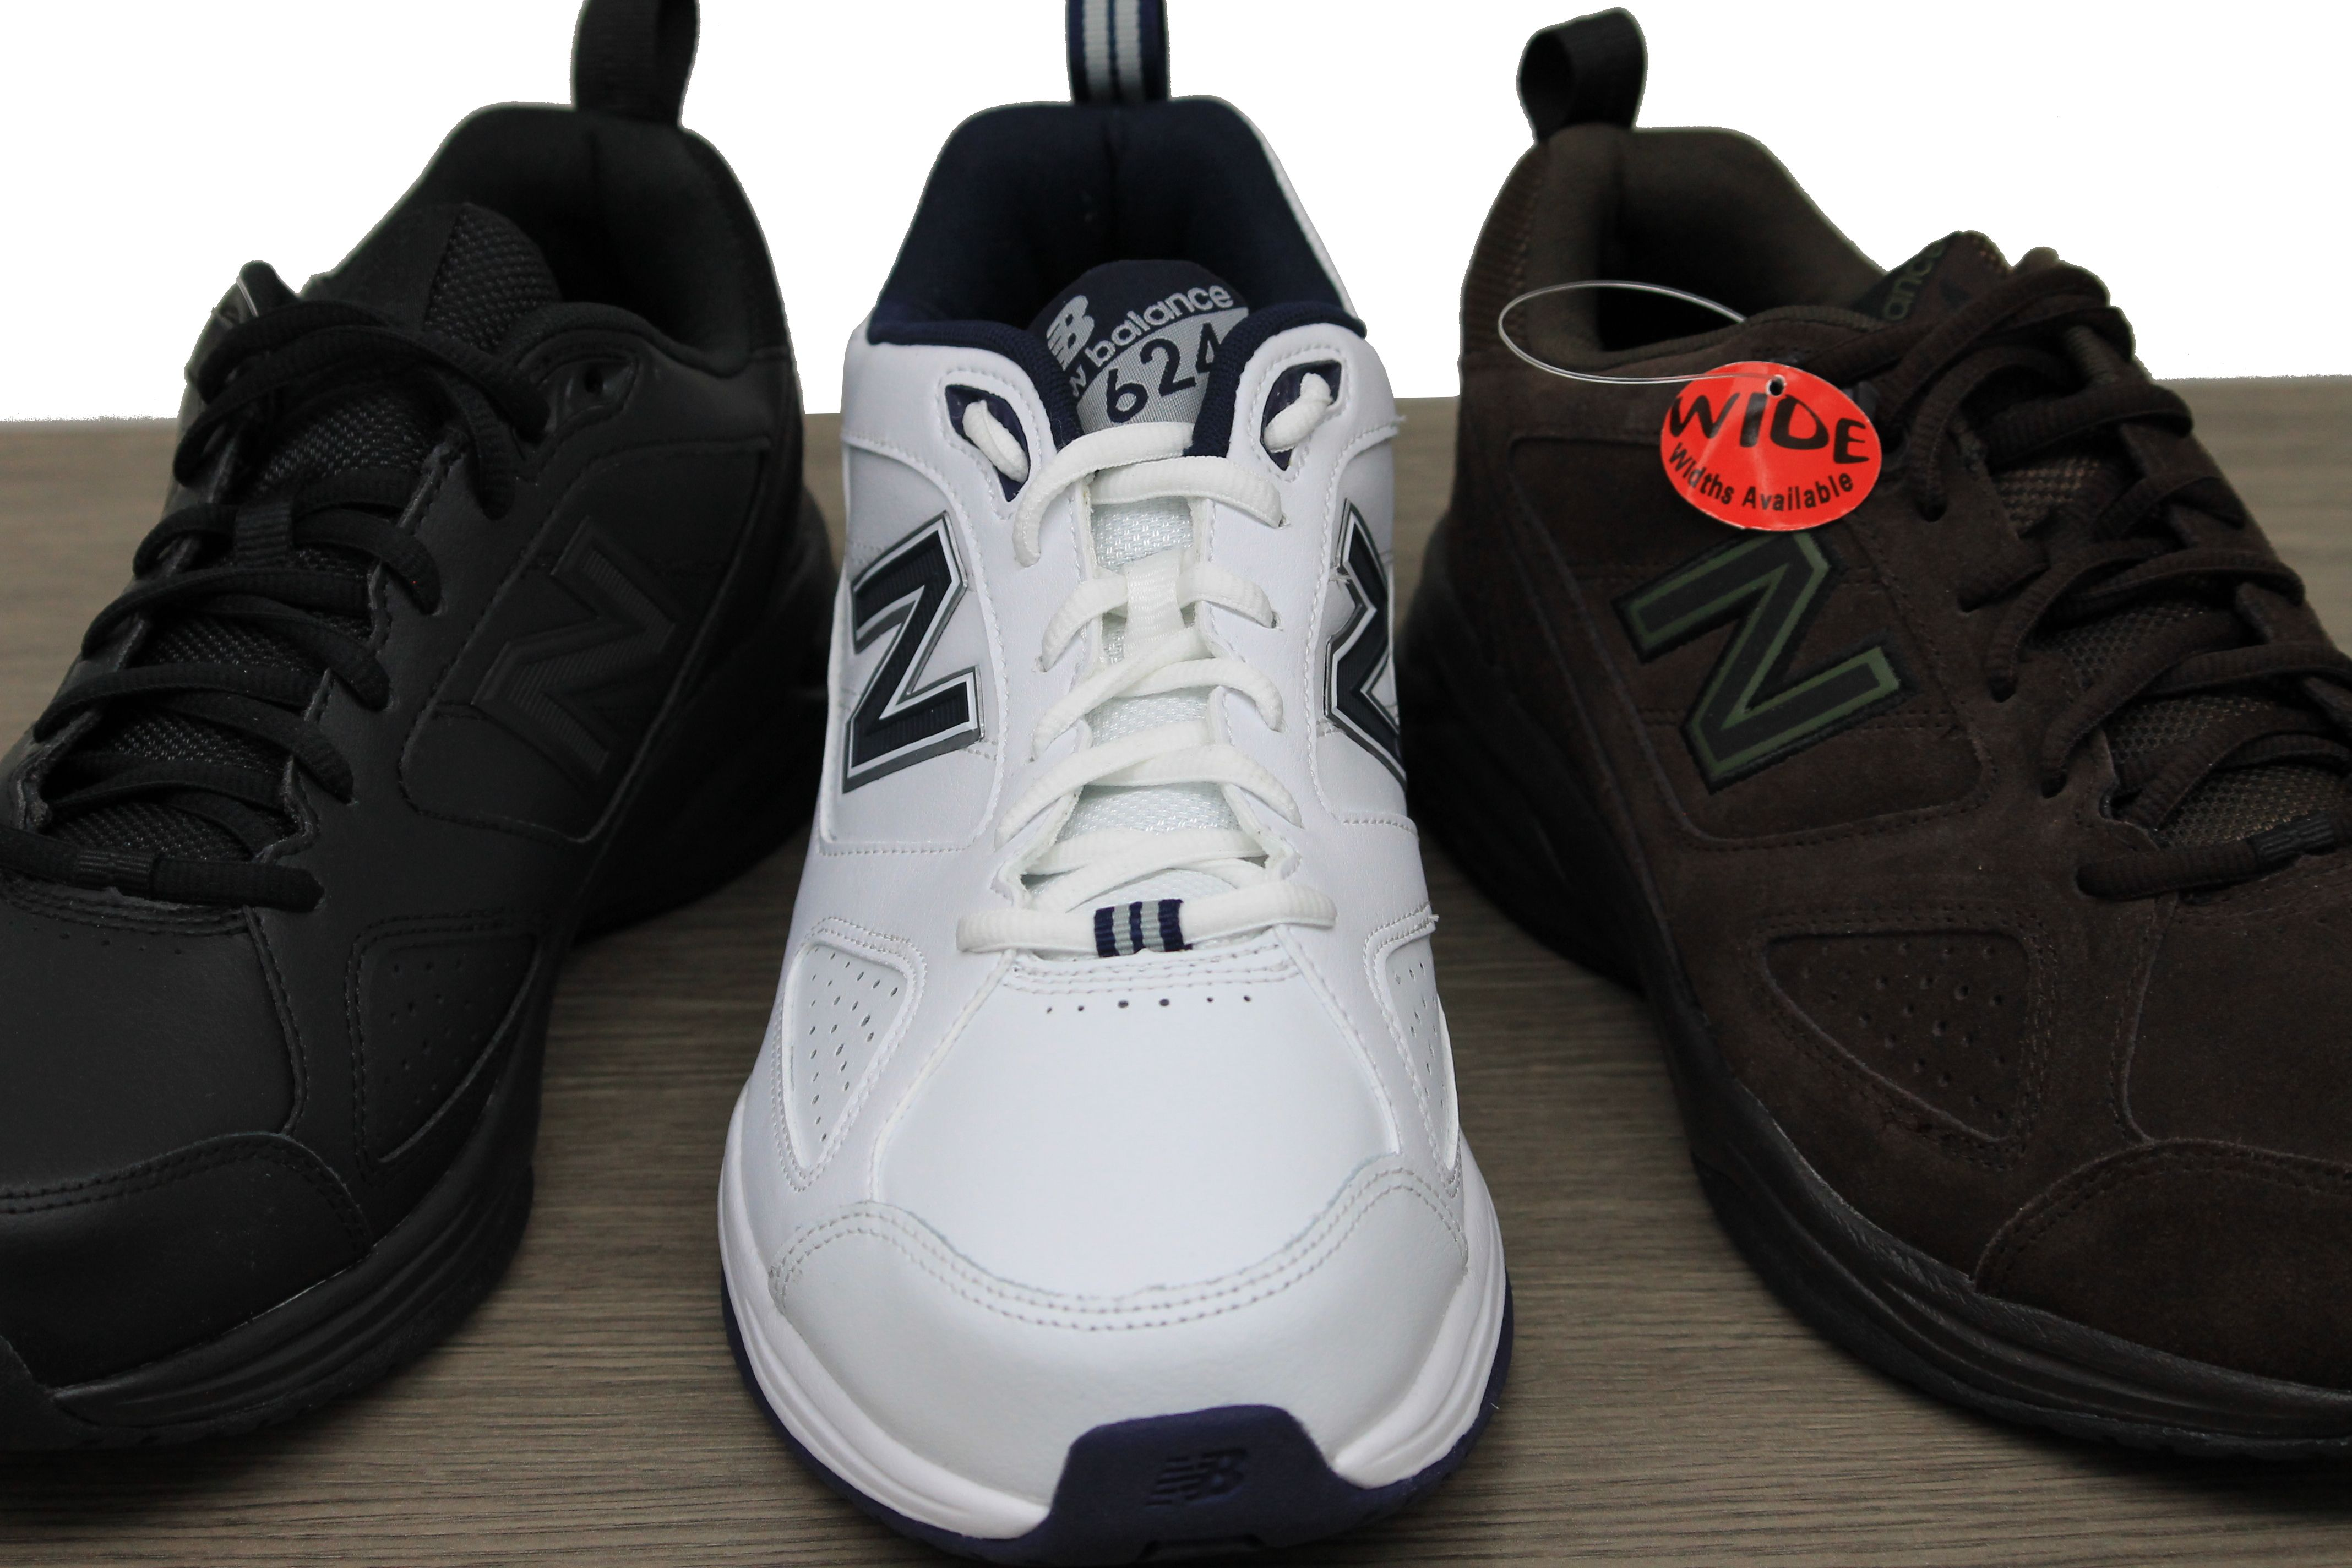 451a095a9cd5 Looking for a sneaker  You can t go wrong with the classic New Balance